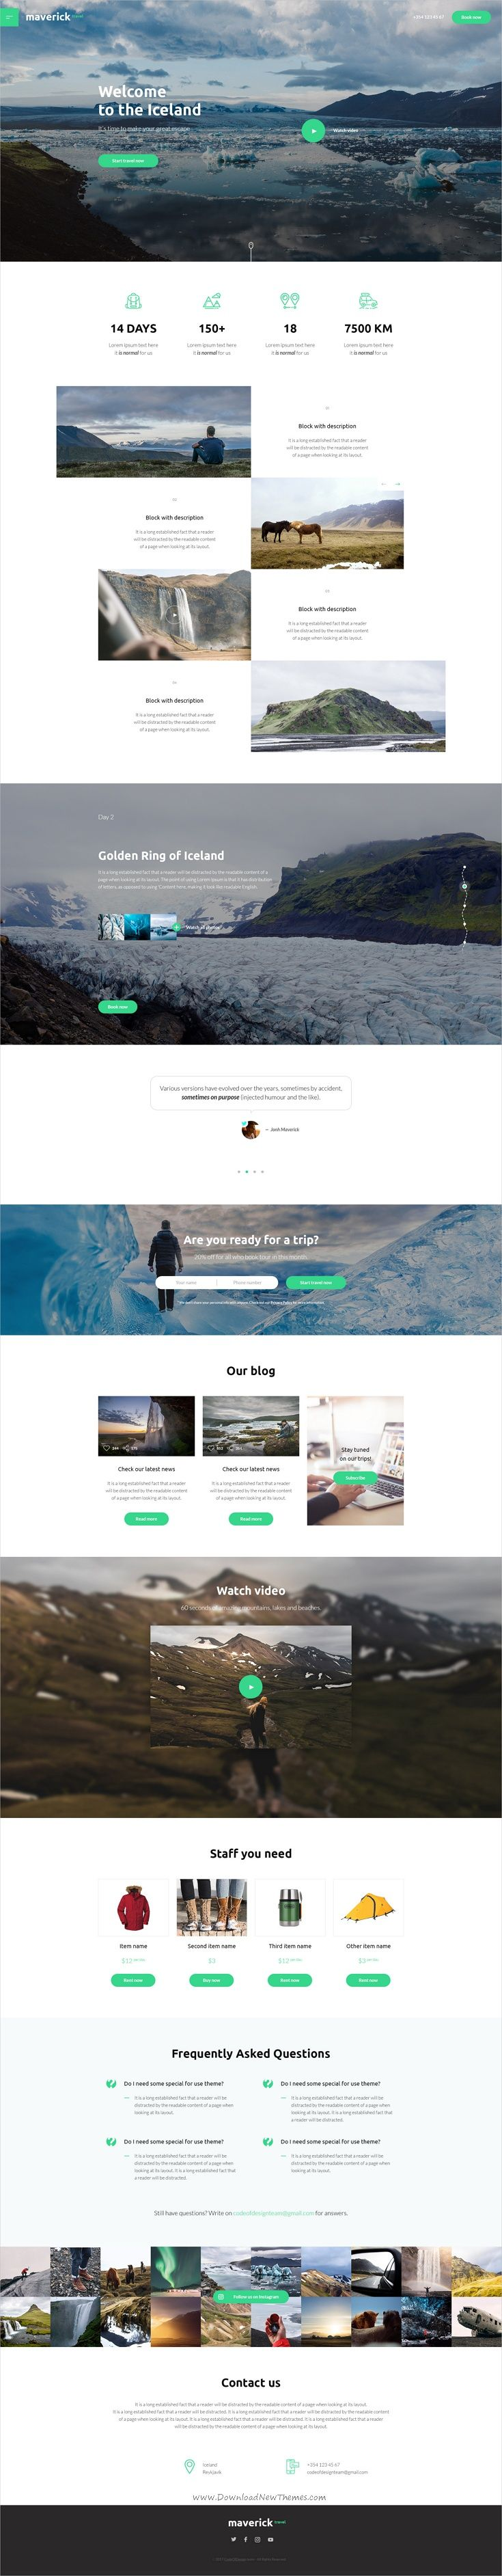 Maverick is a wonderful #Photoshop template for #travel company website with 3 homepage layouts and 7+ organized PSD pages download now➩ https://themeforest.net/item/maverick-travel/19330055?ref=Datasata